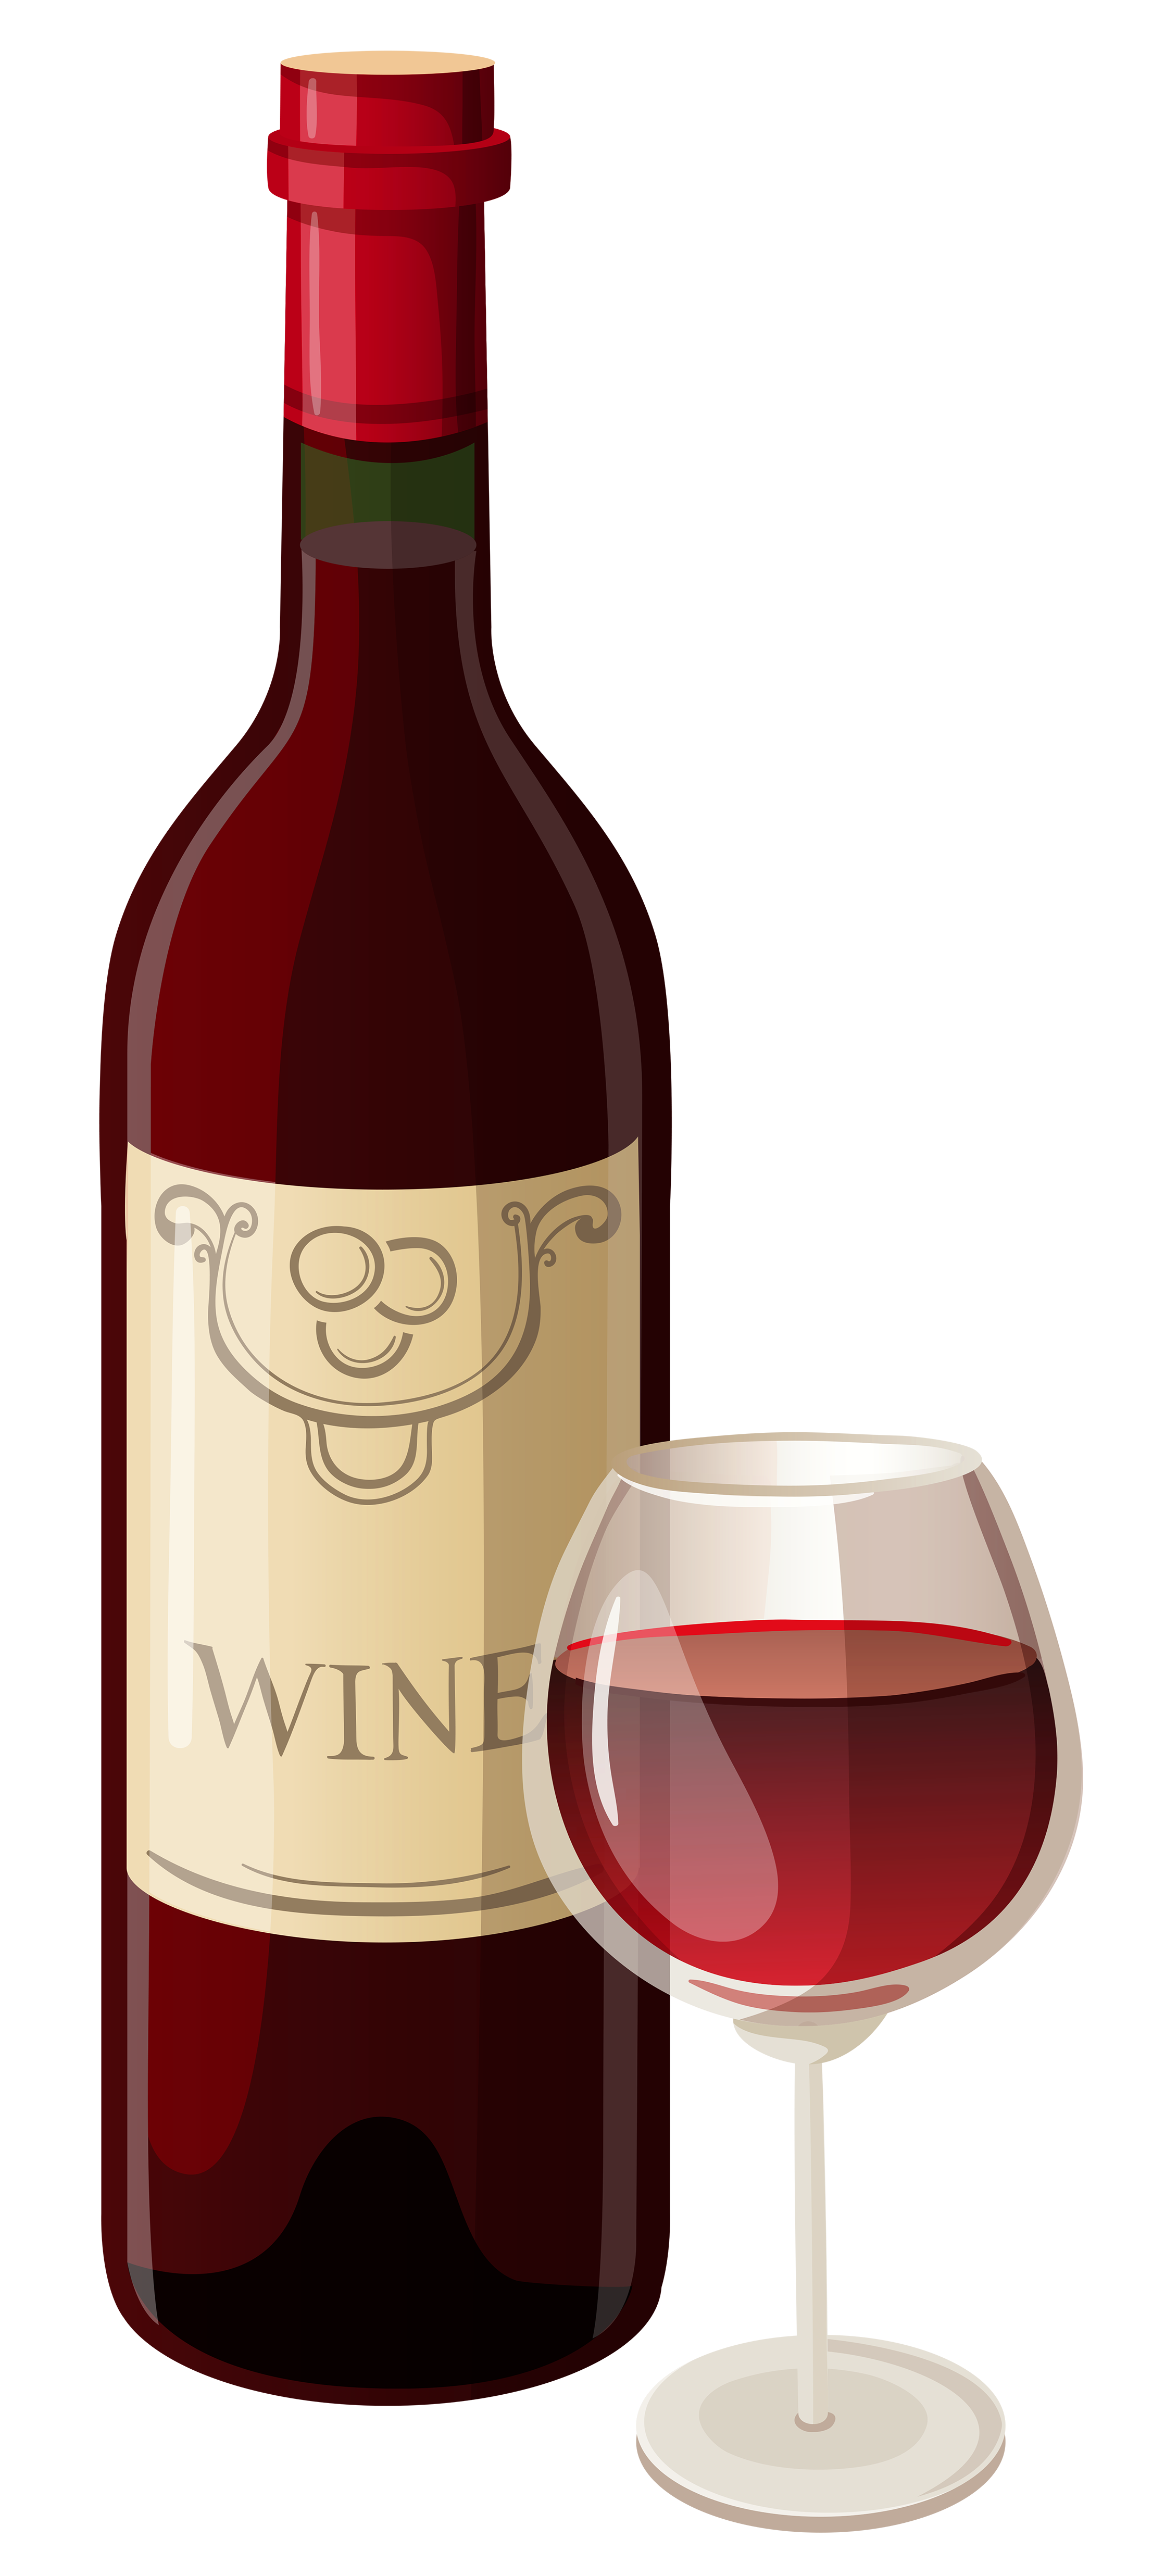 Wines clipart.